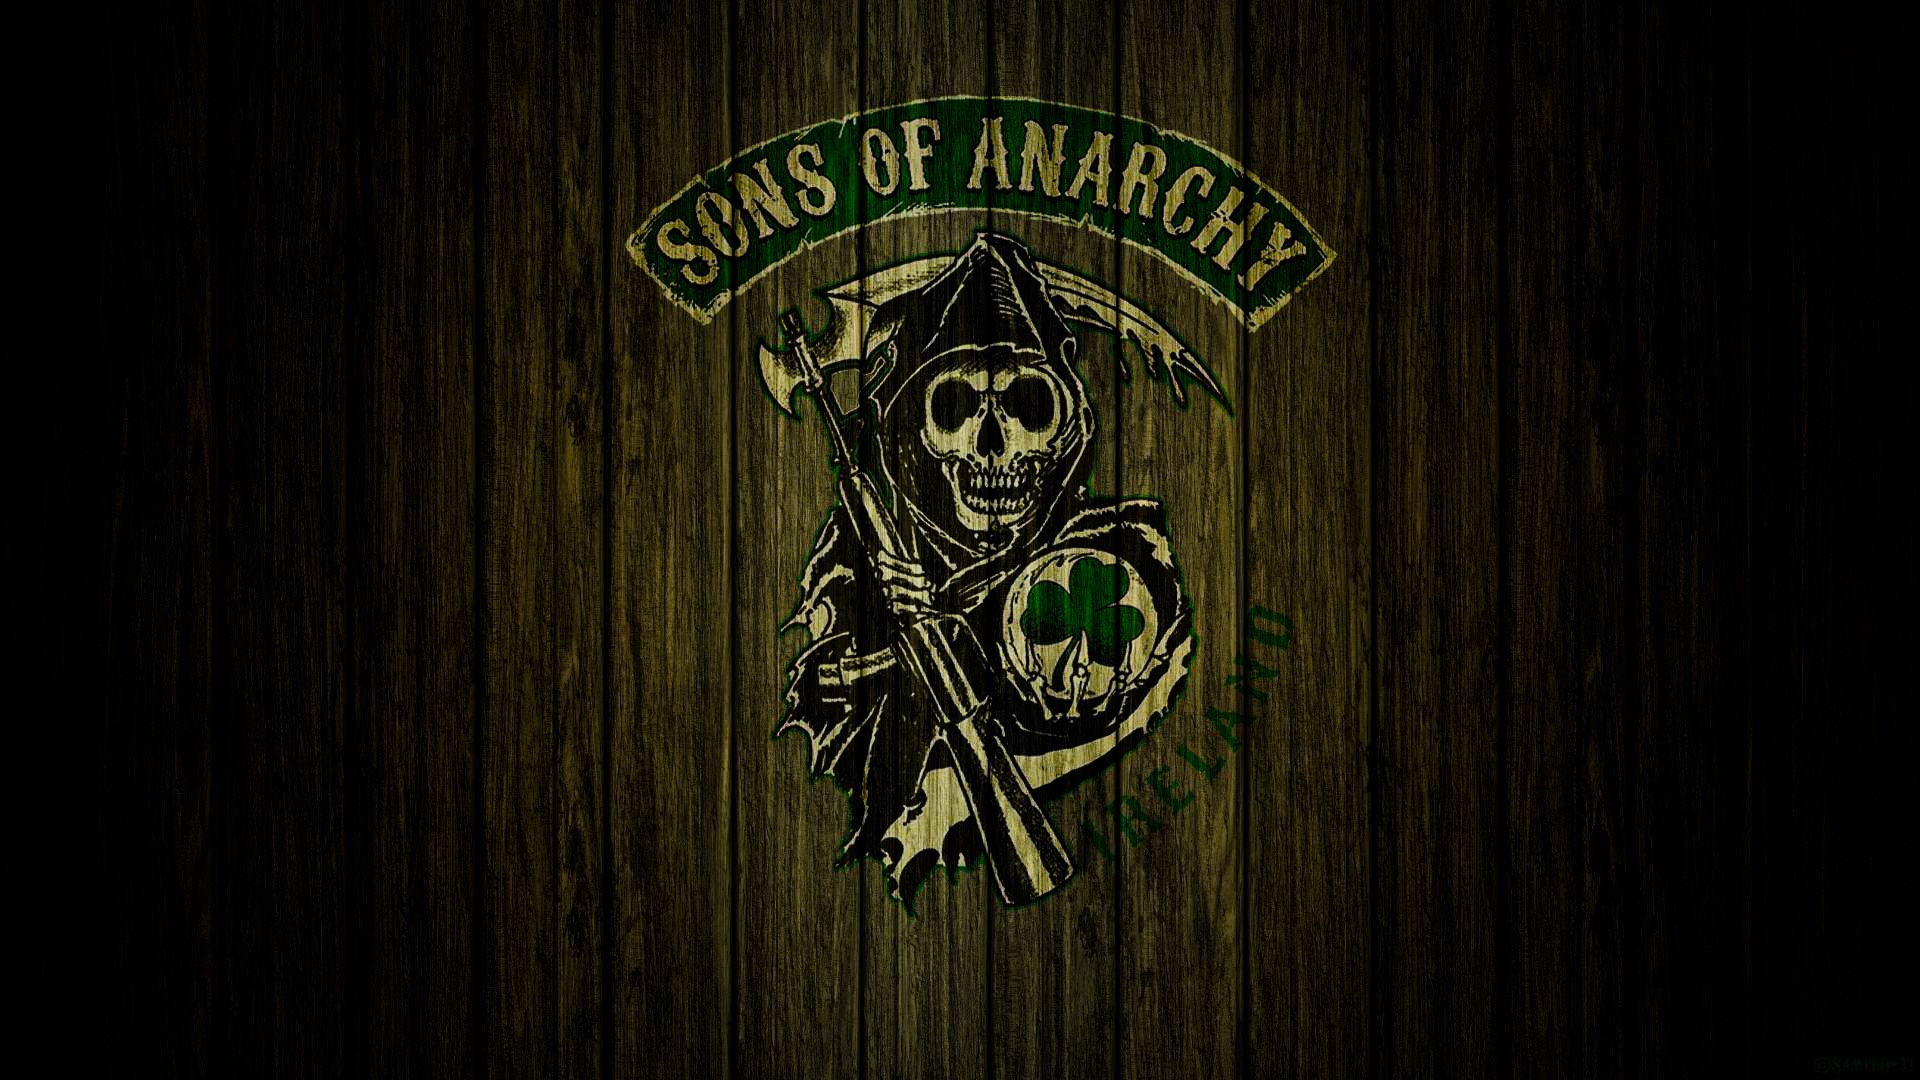 SONS OF ANARCHY - BELFAST, NORTHERN IRELAND | SOA | Logos